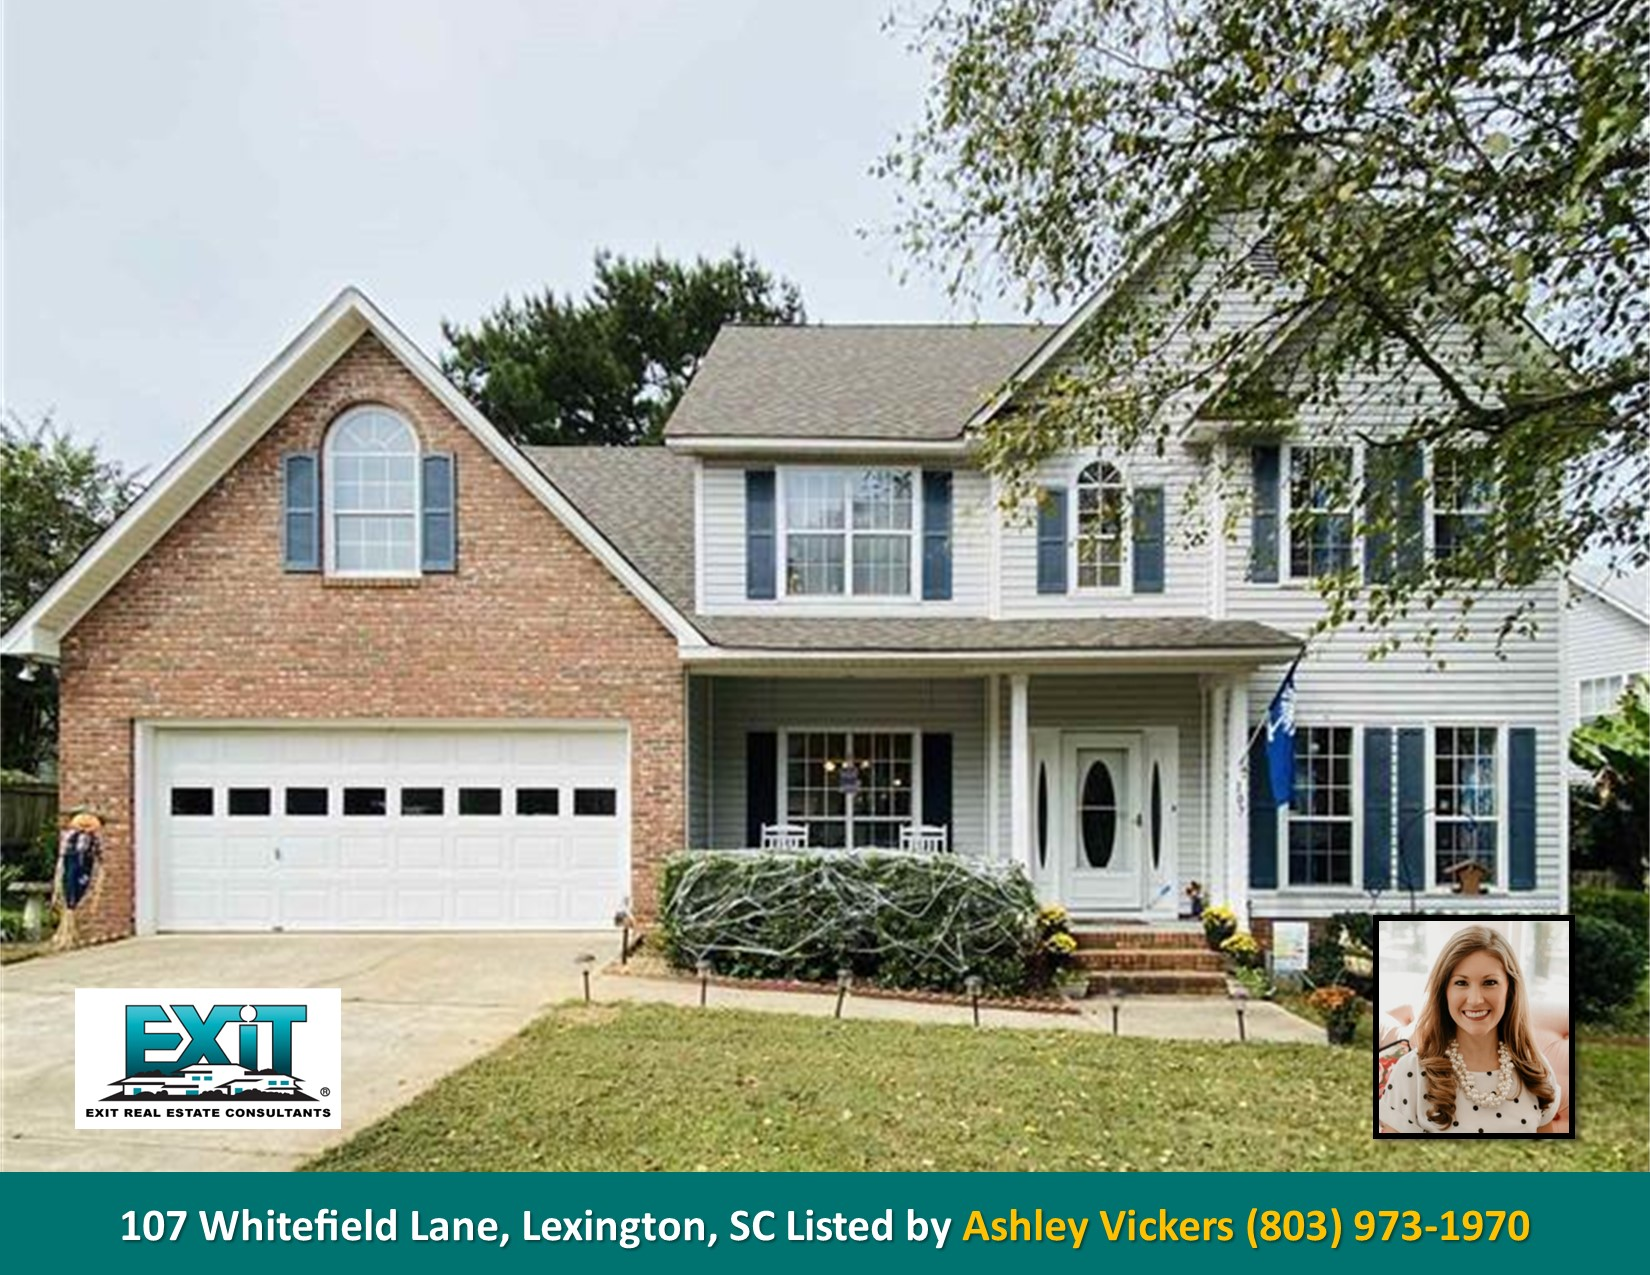 Just listed in Whiteford